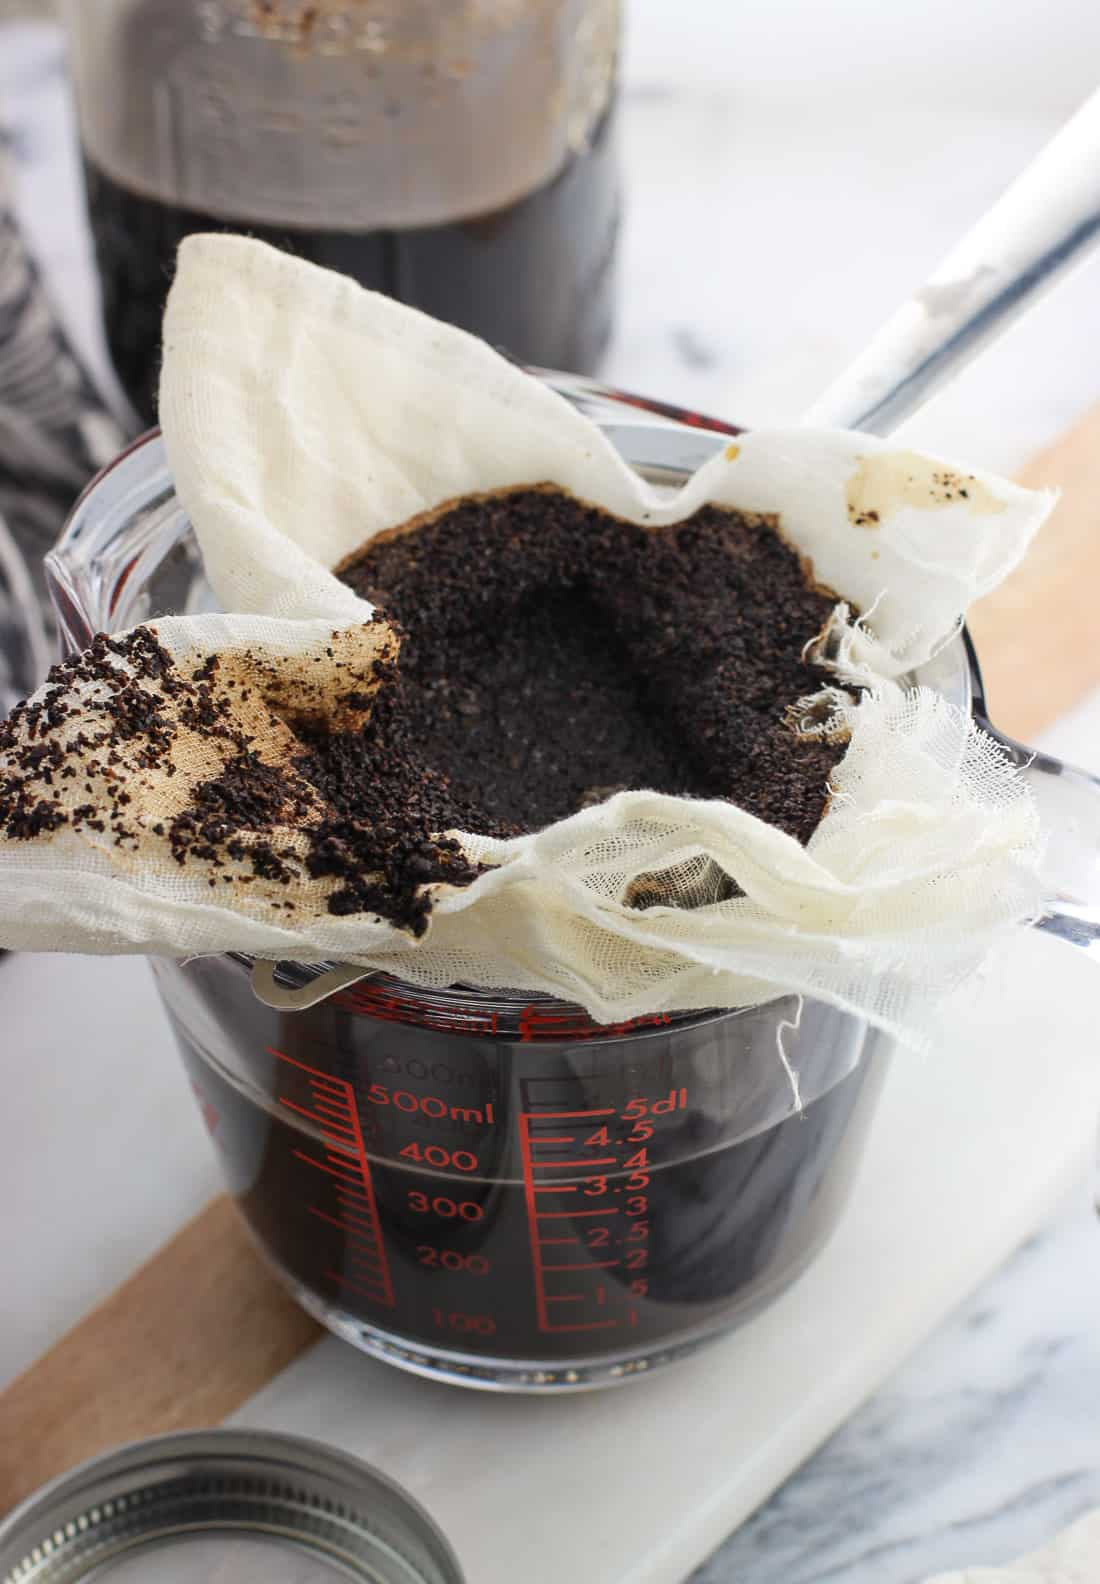 Wet coffee grounds in a cheesecloth-lined strainer set over a large glass measuring cup after the coffee has filtered through